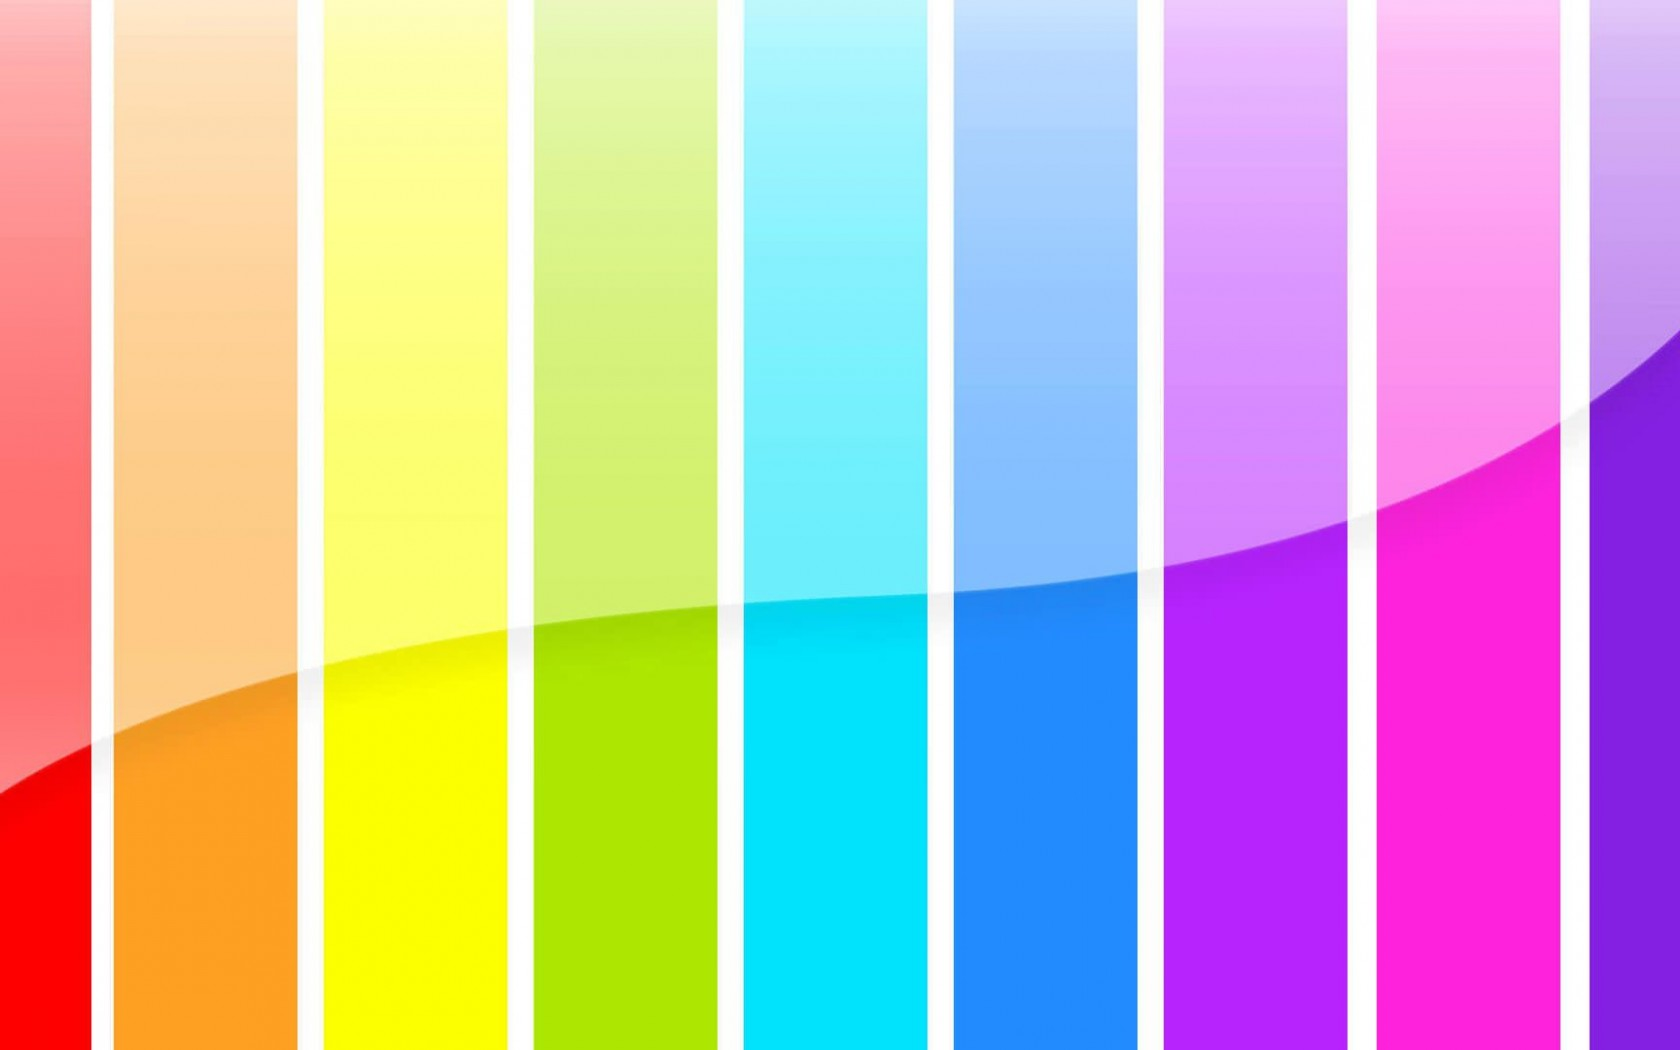 3d glossy color bars background